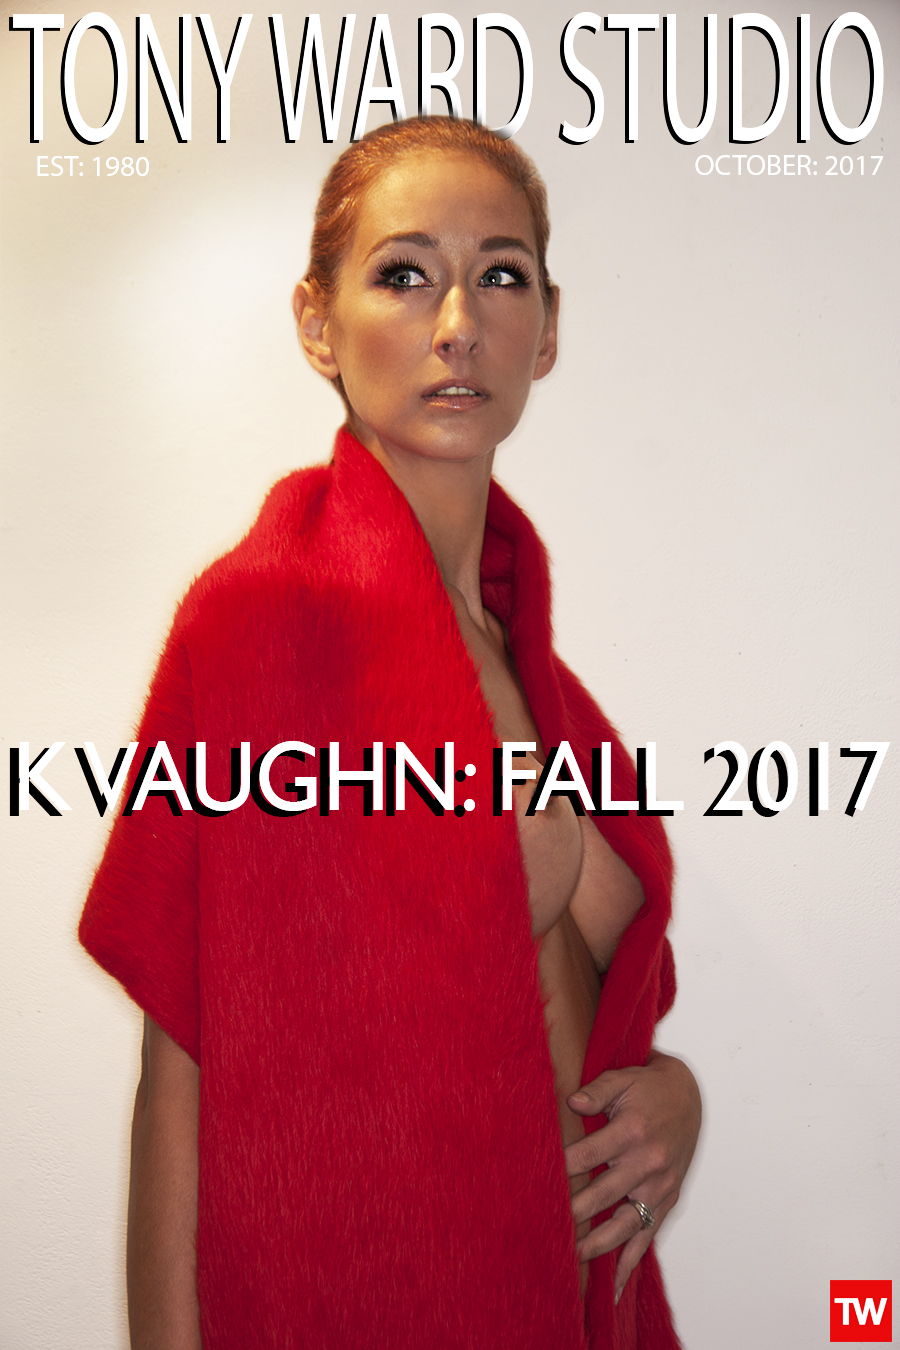 Tony_Ward_Studio_K_Vaughn_Red_mohair_scarf_woman_nude_sexy_luscious_fabric_design